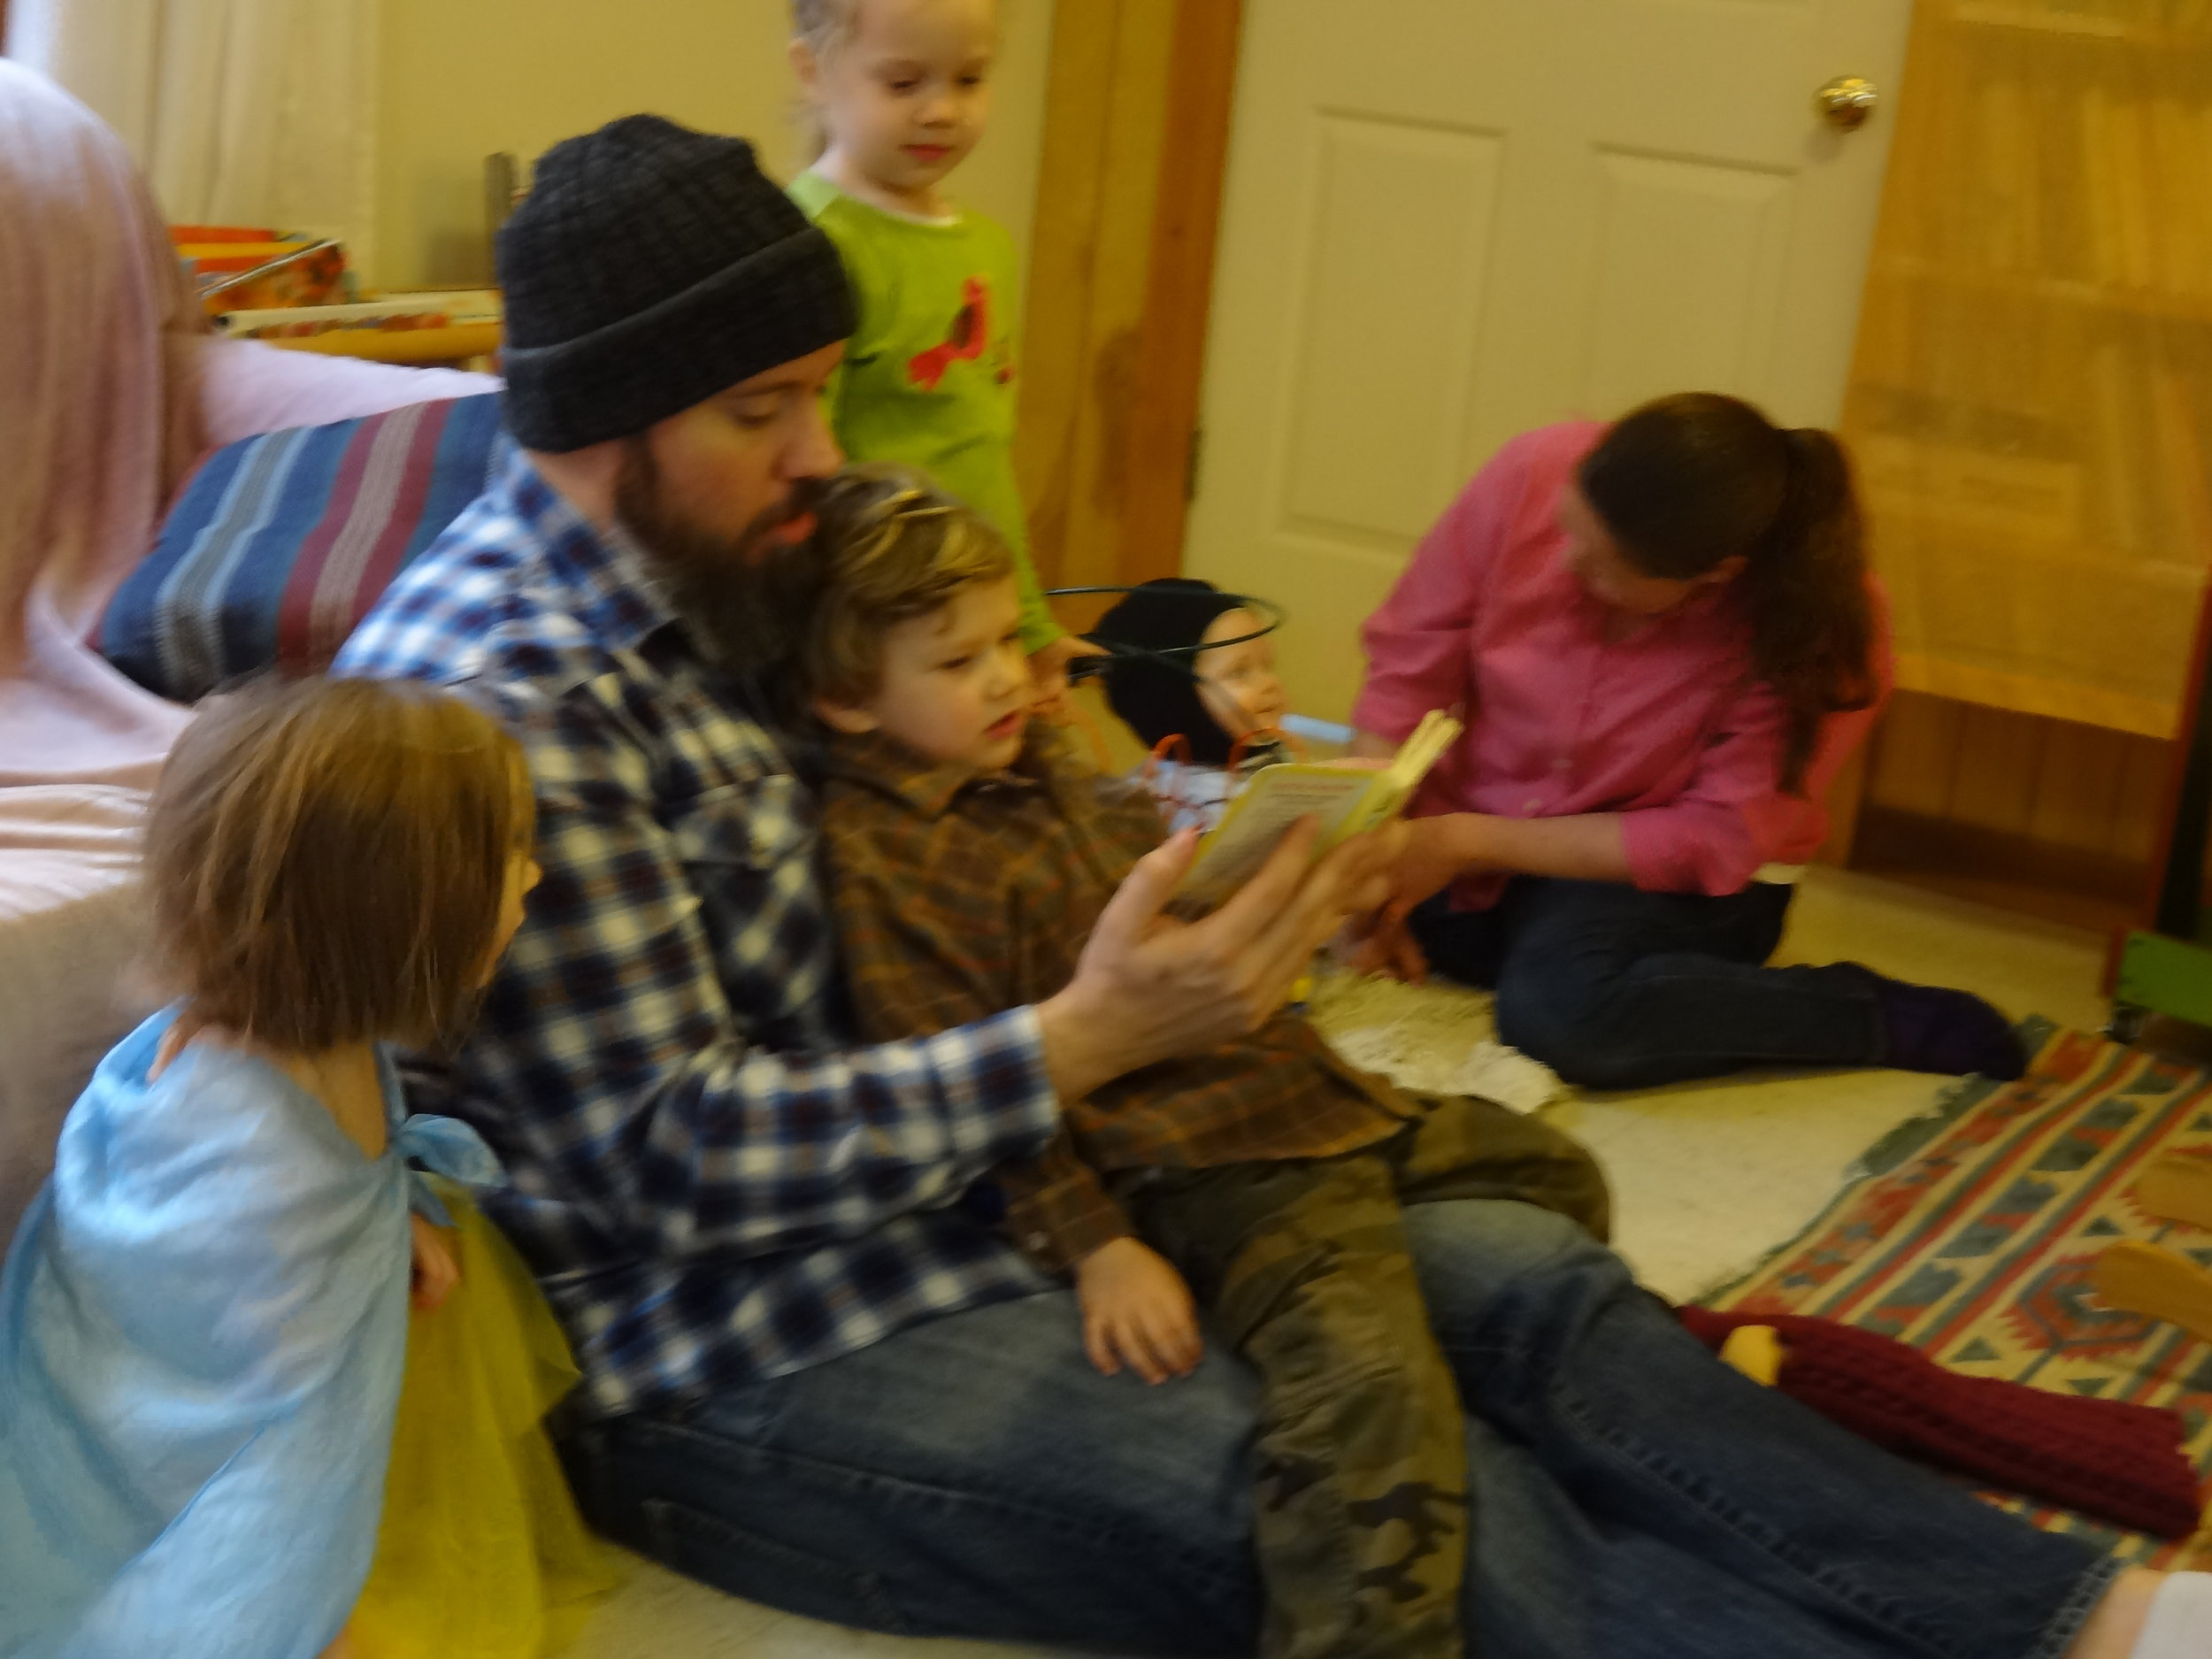 Brad is visiting with Cassian. Children enjoyed reading books with him.